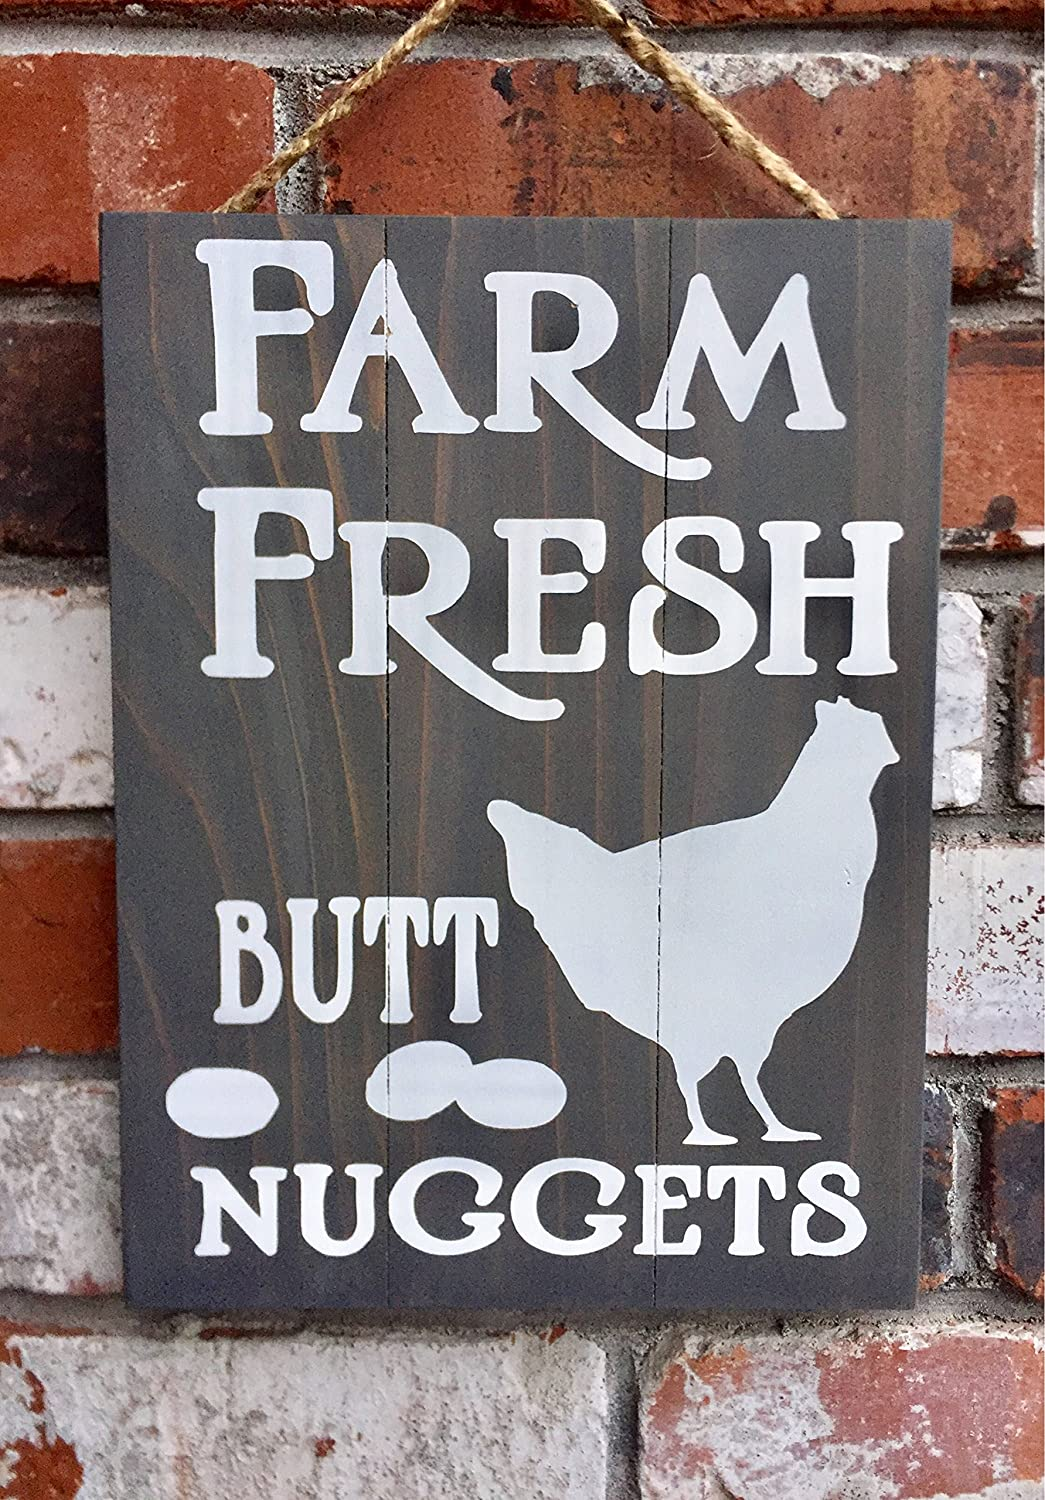 Farm Fresh Butt Nuggets Funny Chicken Eggs Country Decor Rustic Kitchen Gift Country Home Decor Funny Quote Plaque Home Craft Sign for Women Men